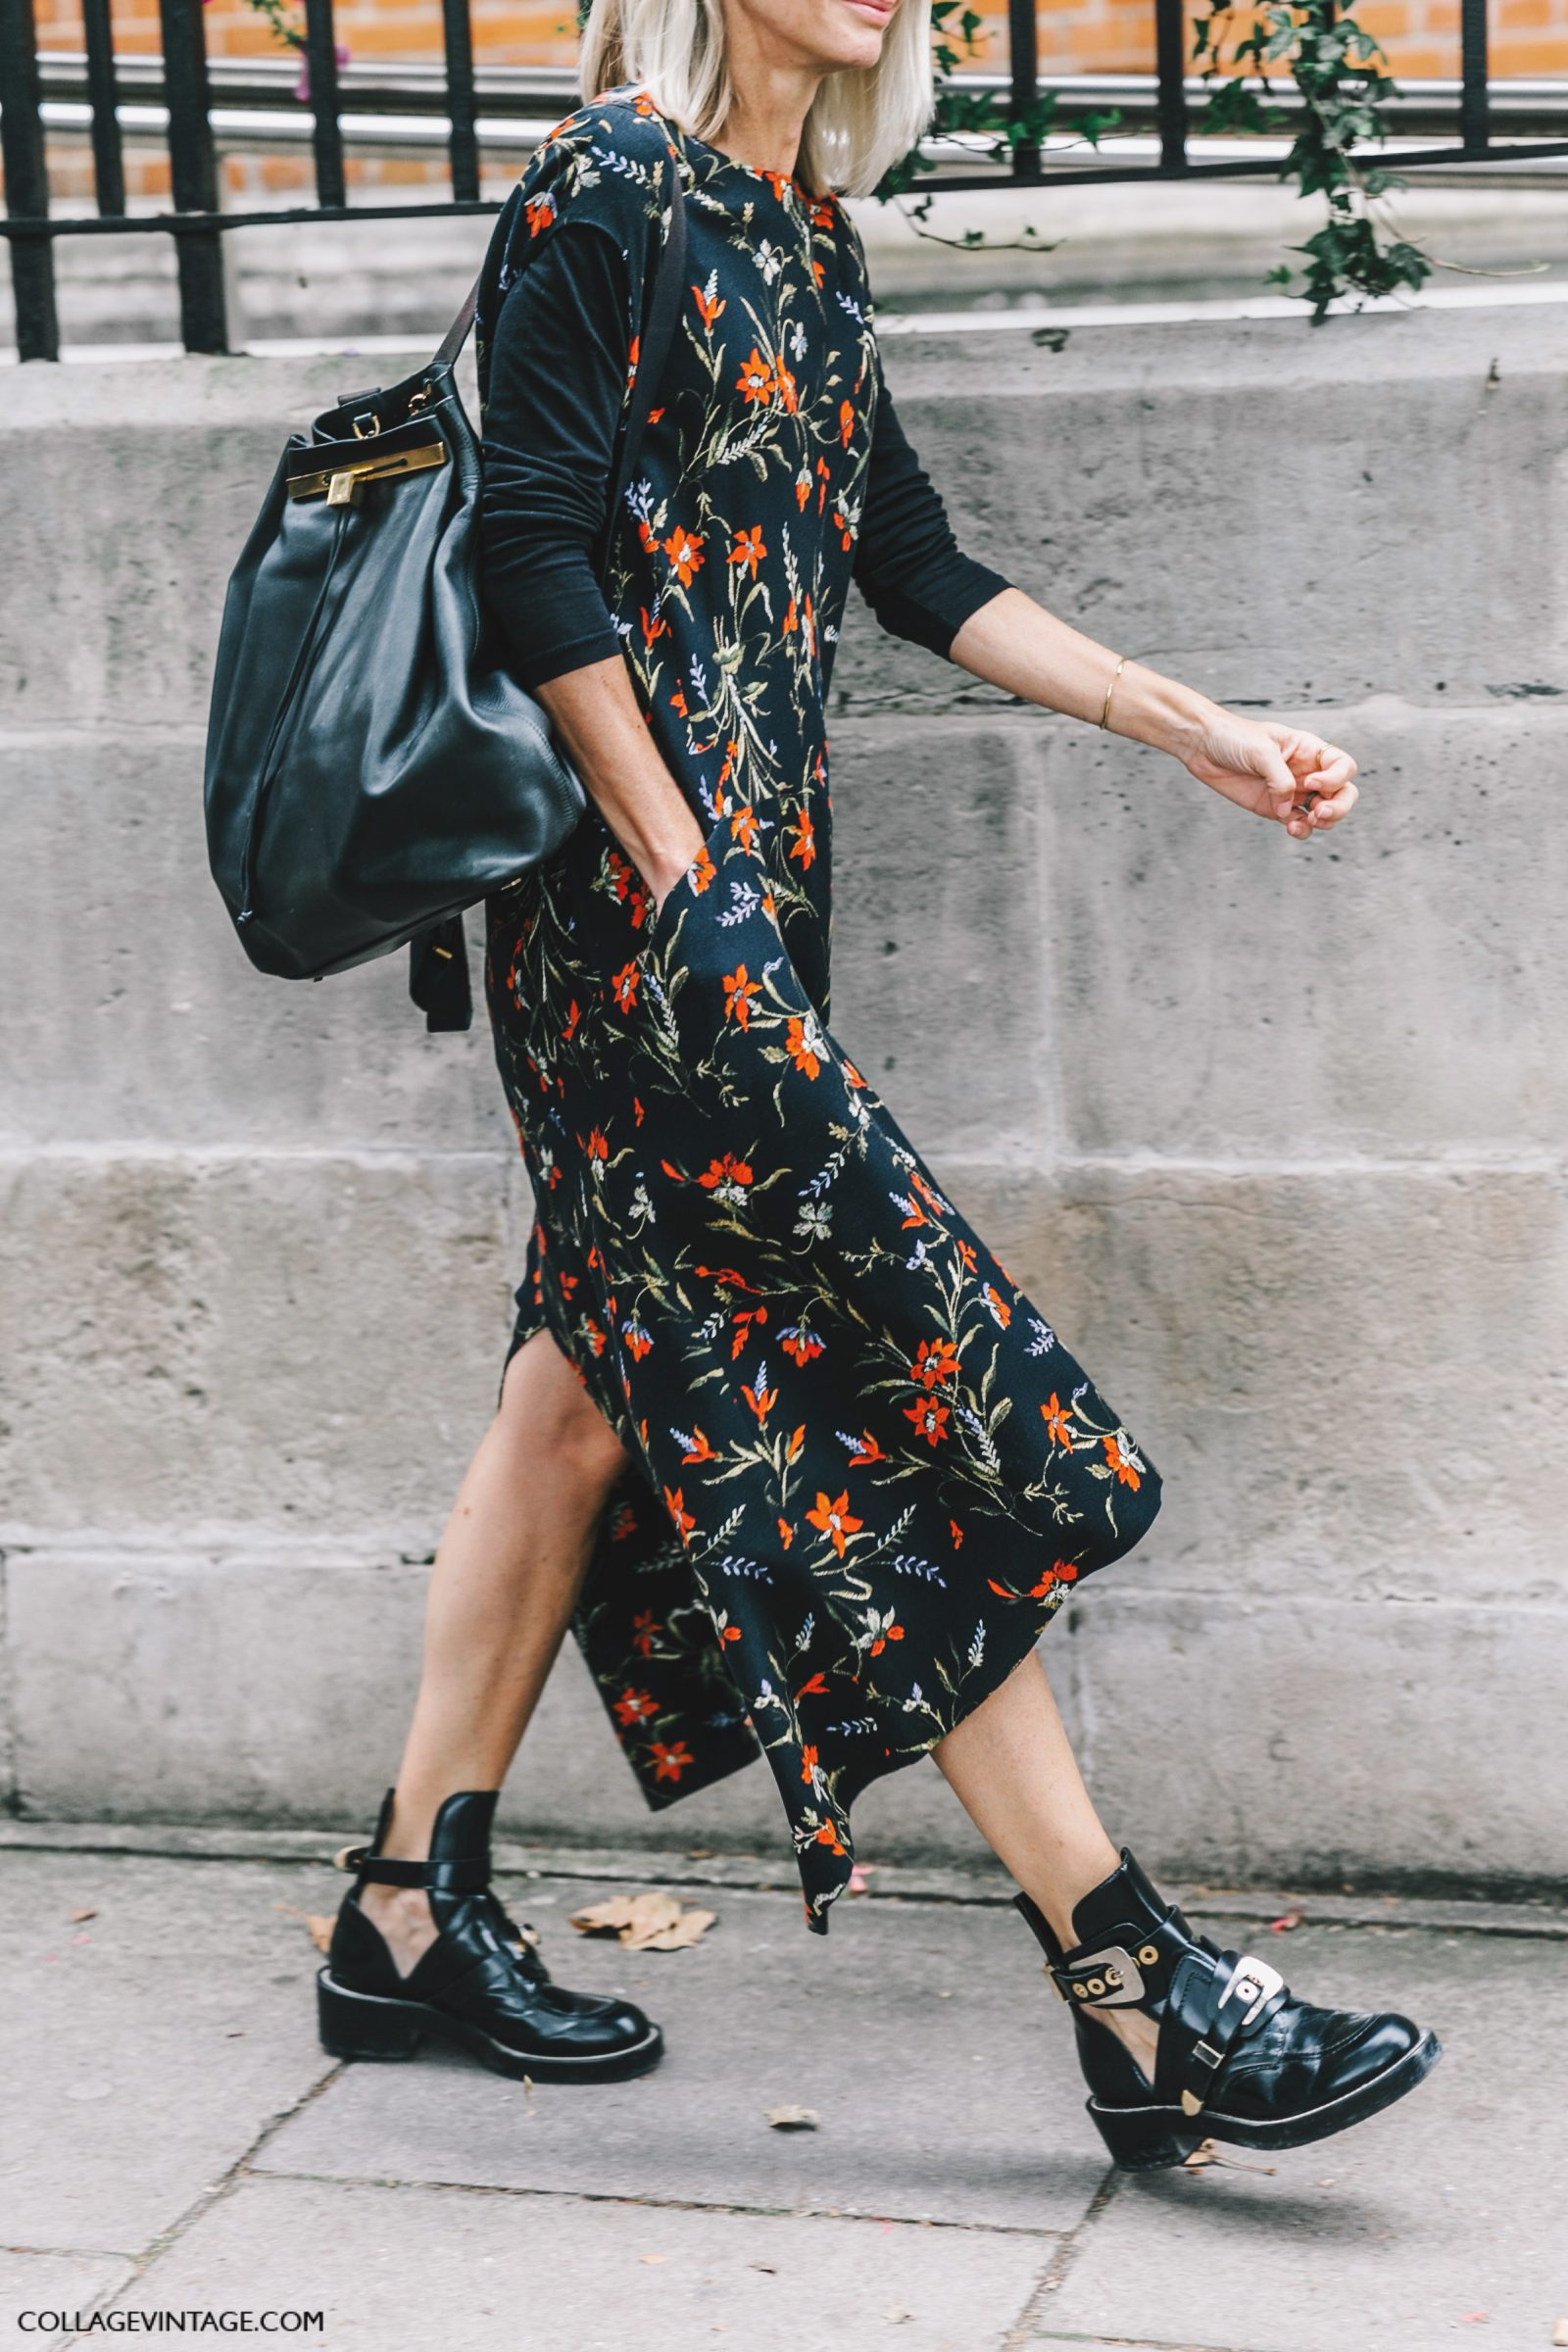 lfw-london_fashion_week_ss17-street_style-outfits-collage_vintage-vintage-topshop_unique-anya-mulberry-preen-6